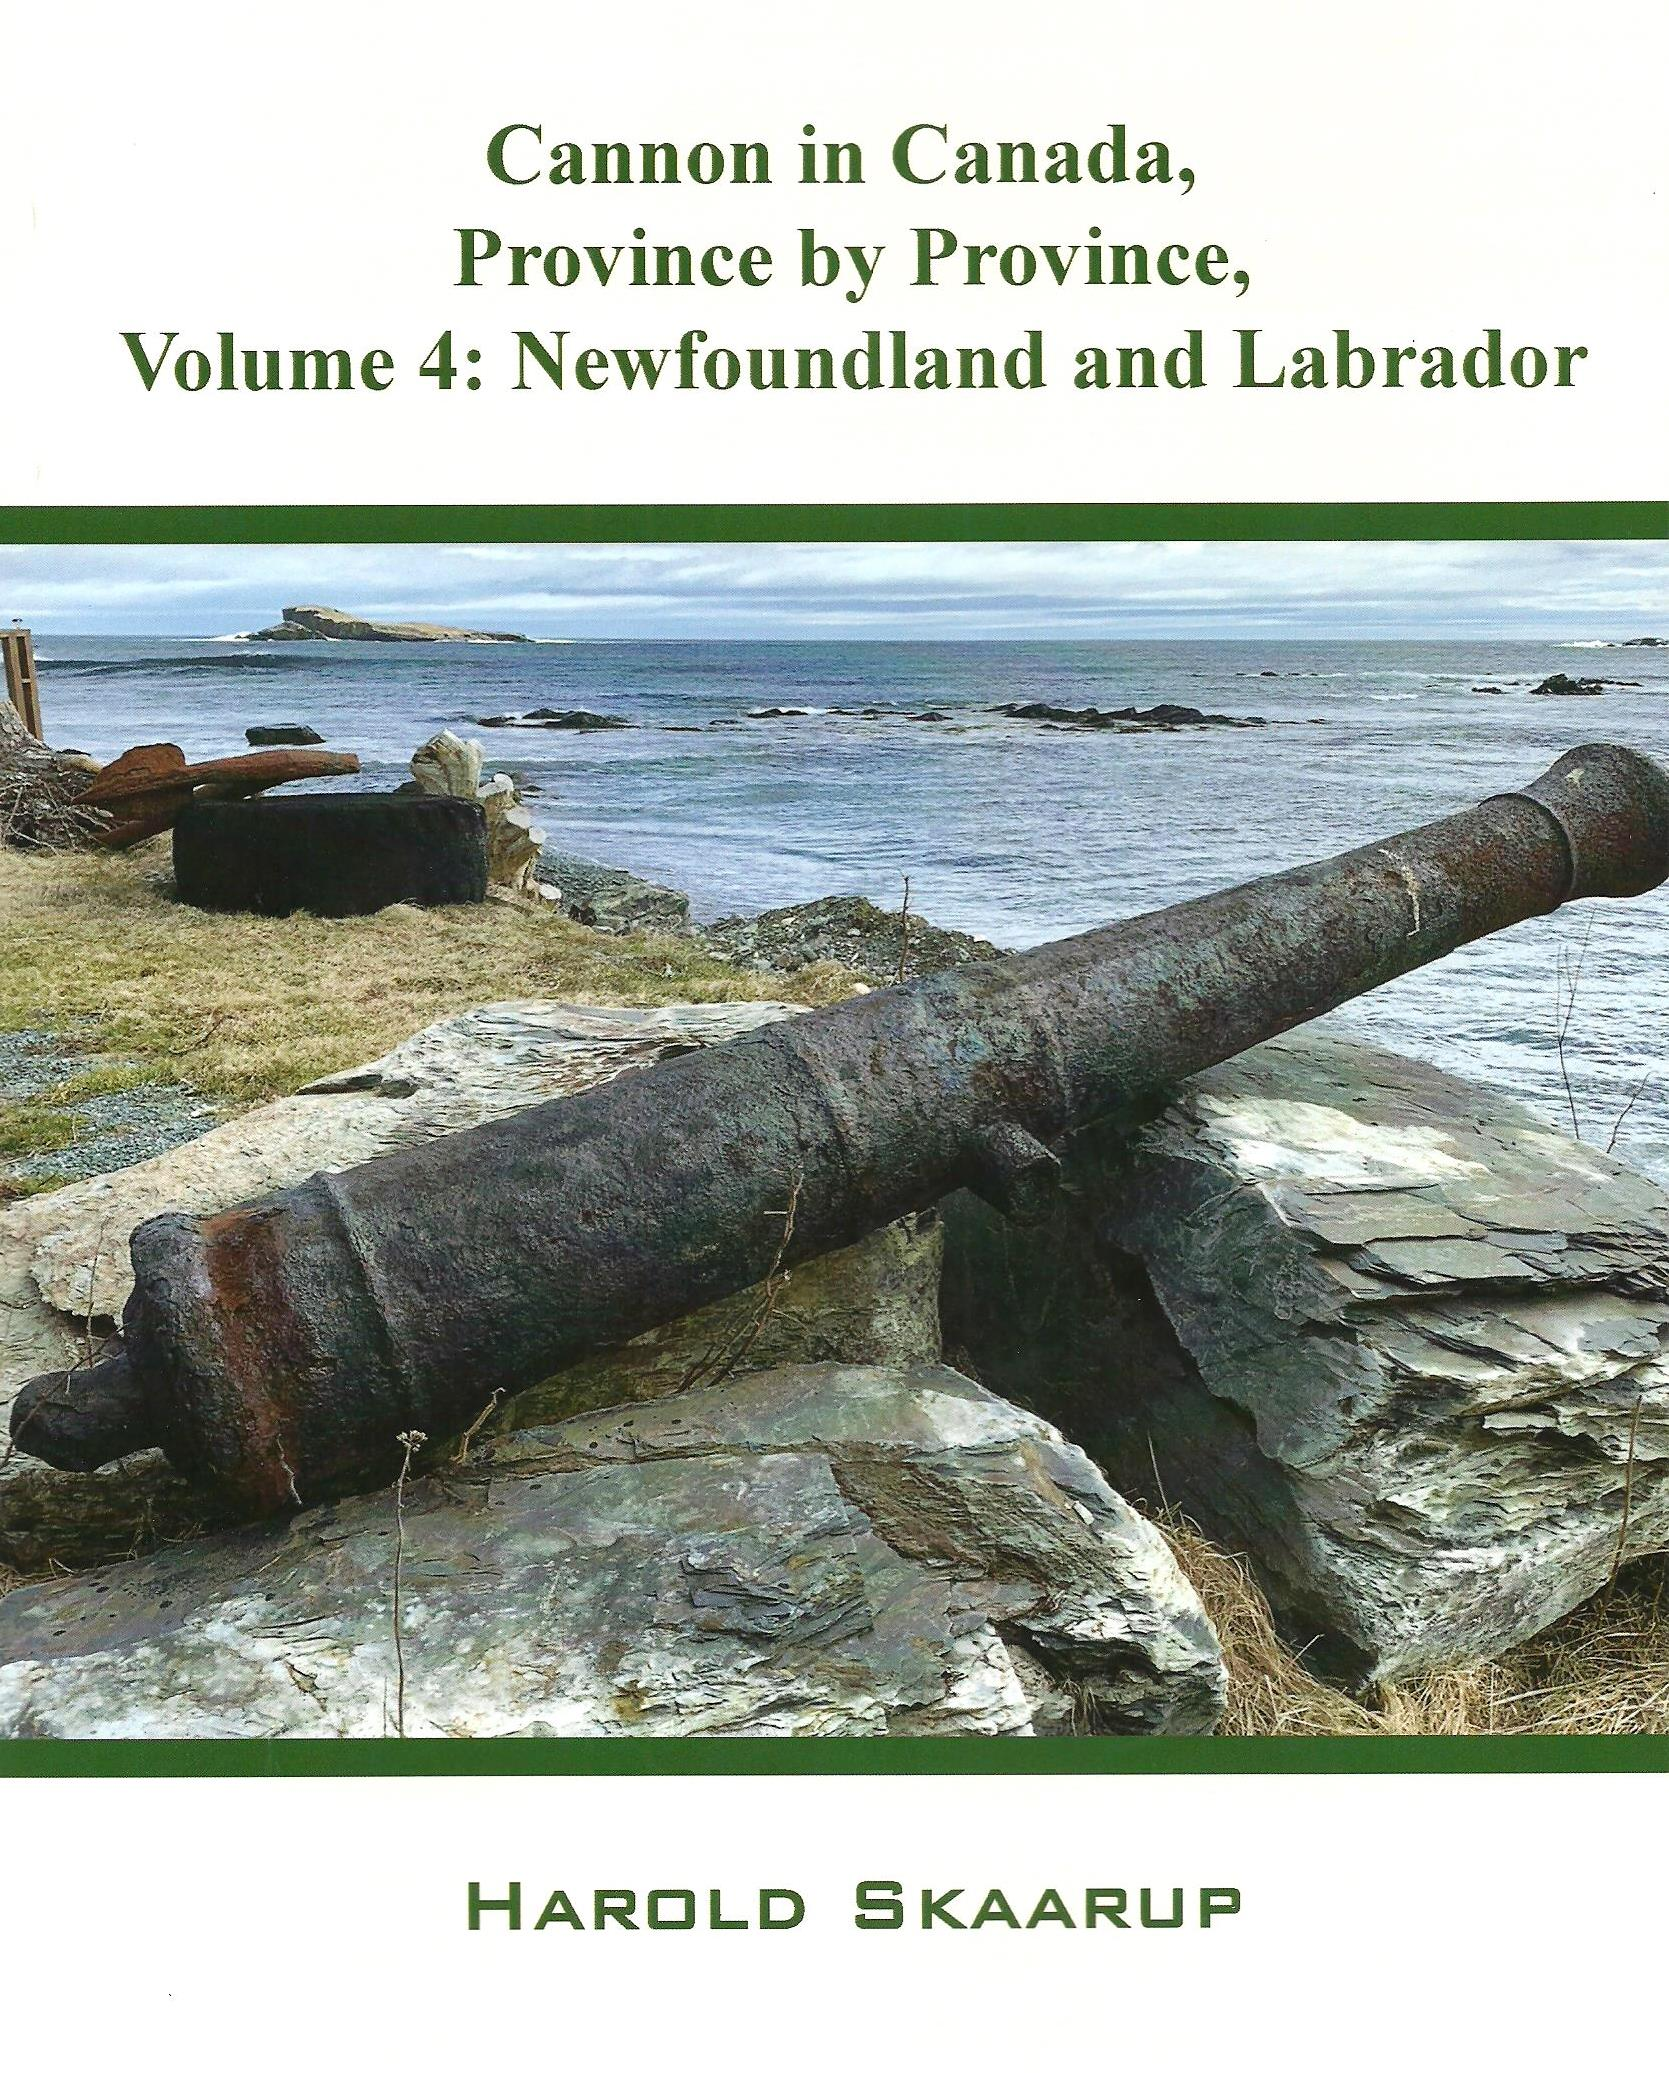 Cannon in Canada, Province by Province, Volume 4: Newfoundland and Labrador